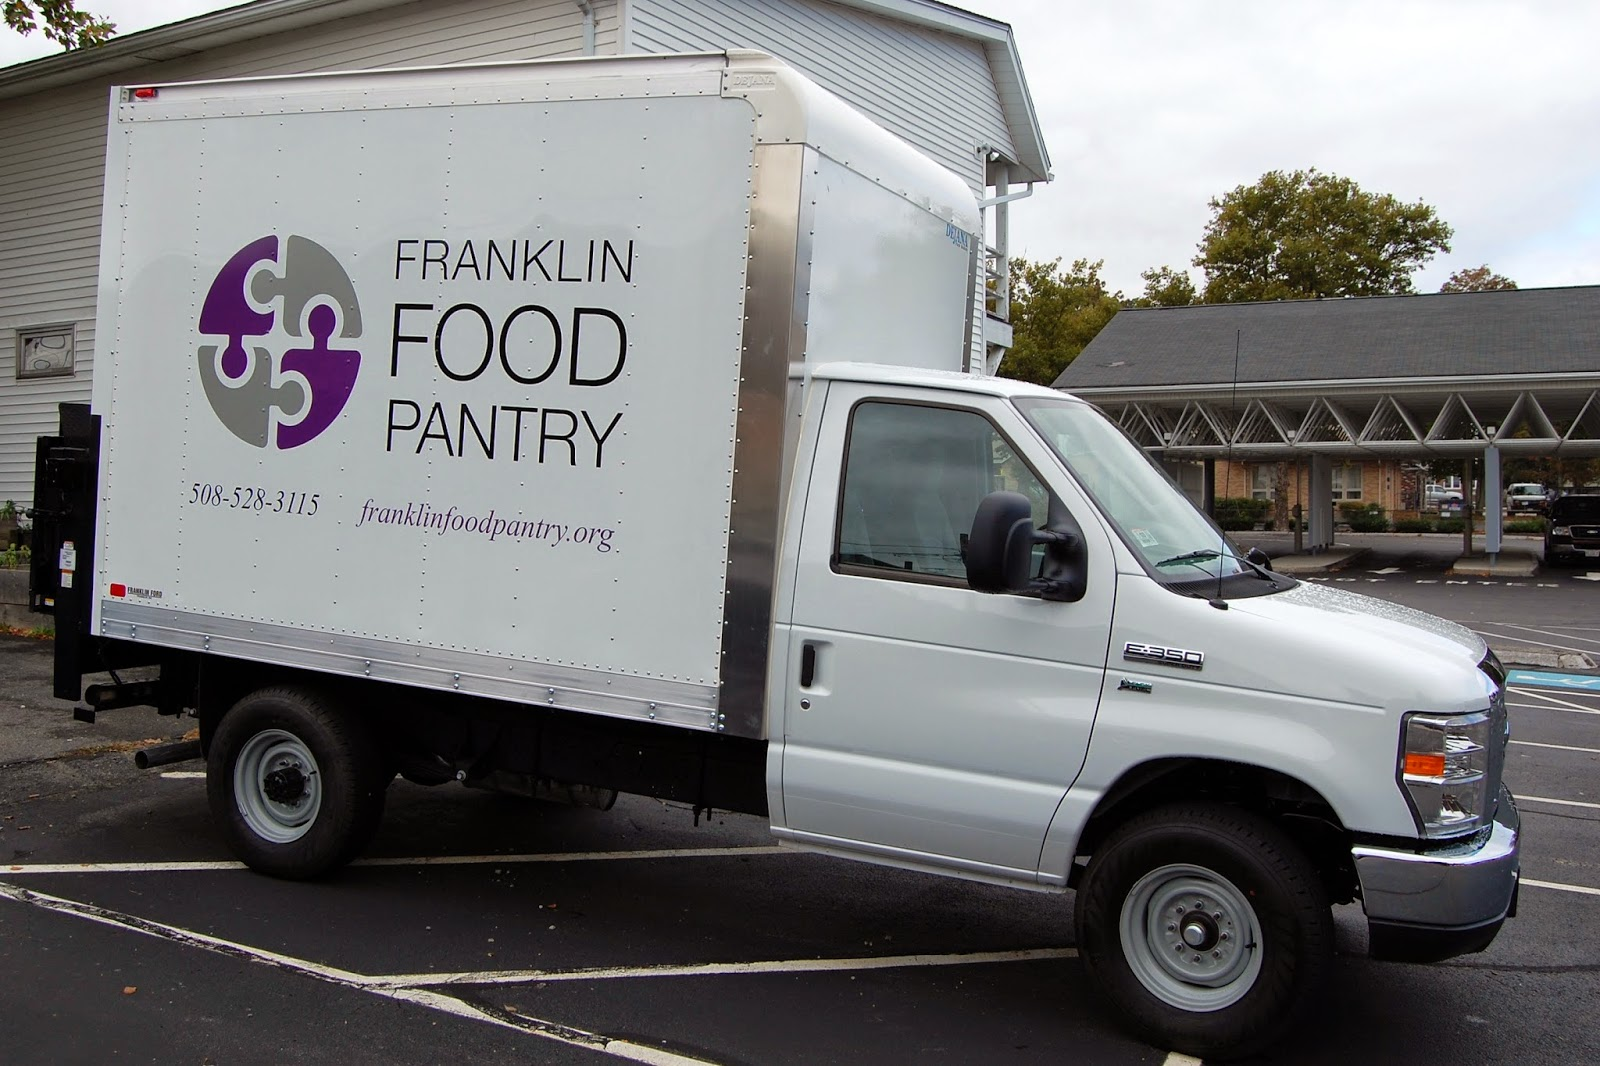 Franklin Food Pantry - mobile pantry truck